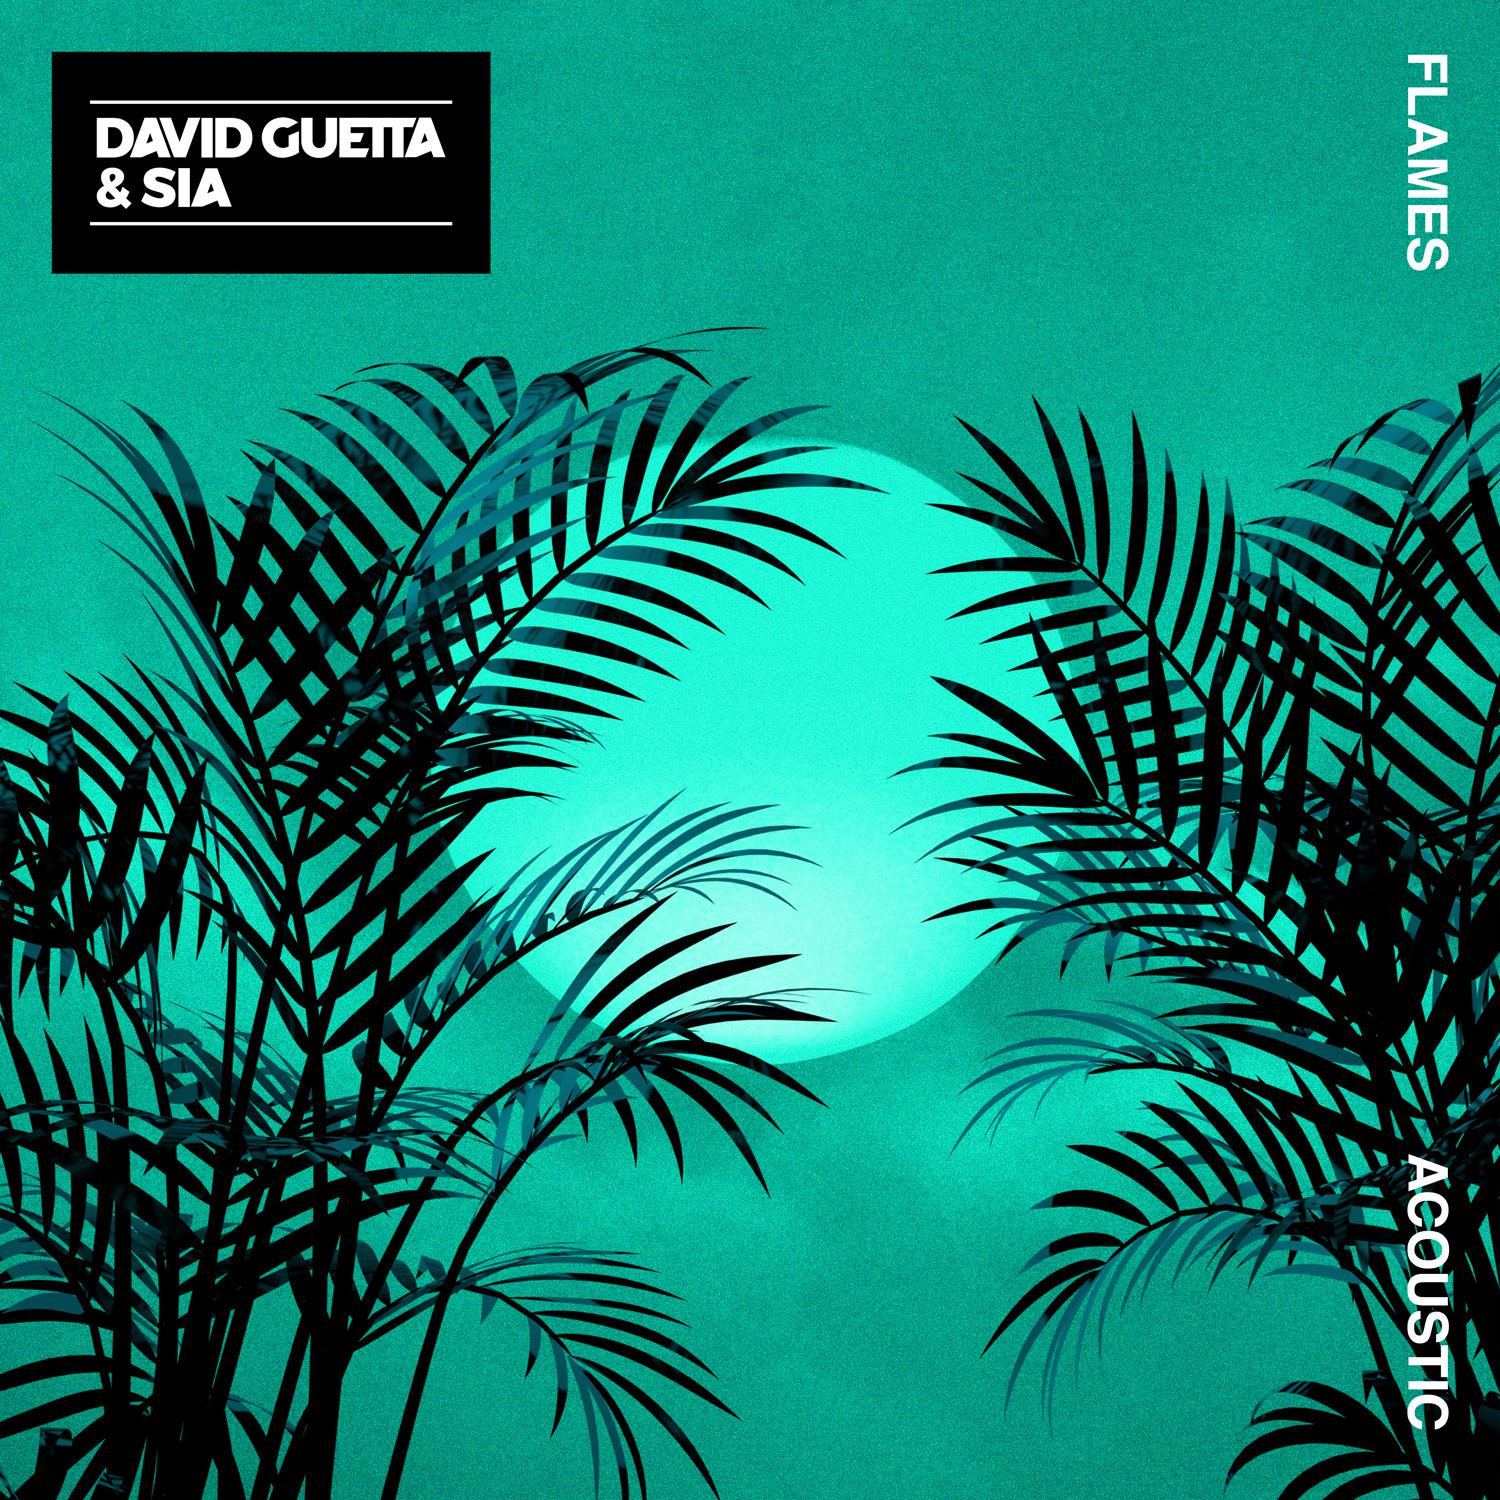 David Guetta - Flames (Acoustic) (Ft. Sia) 极致女高音